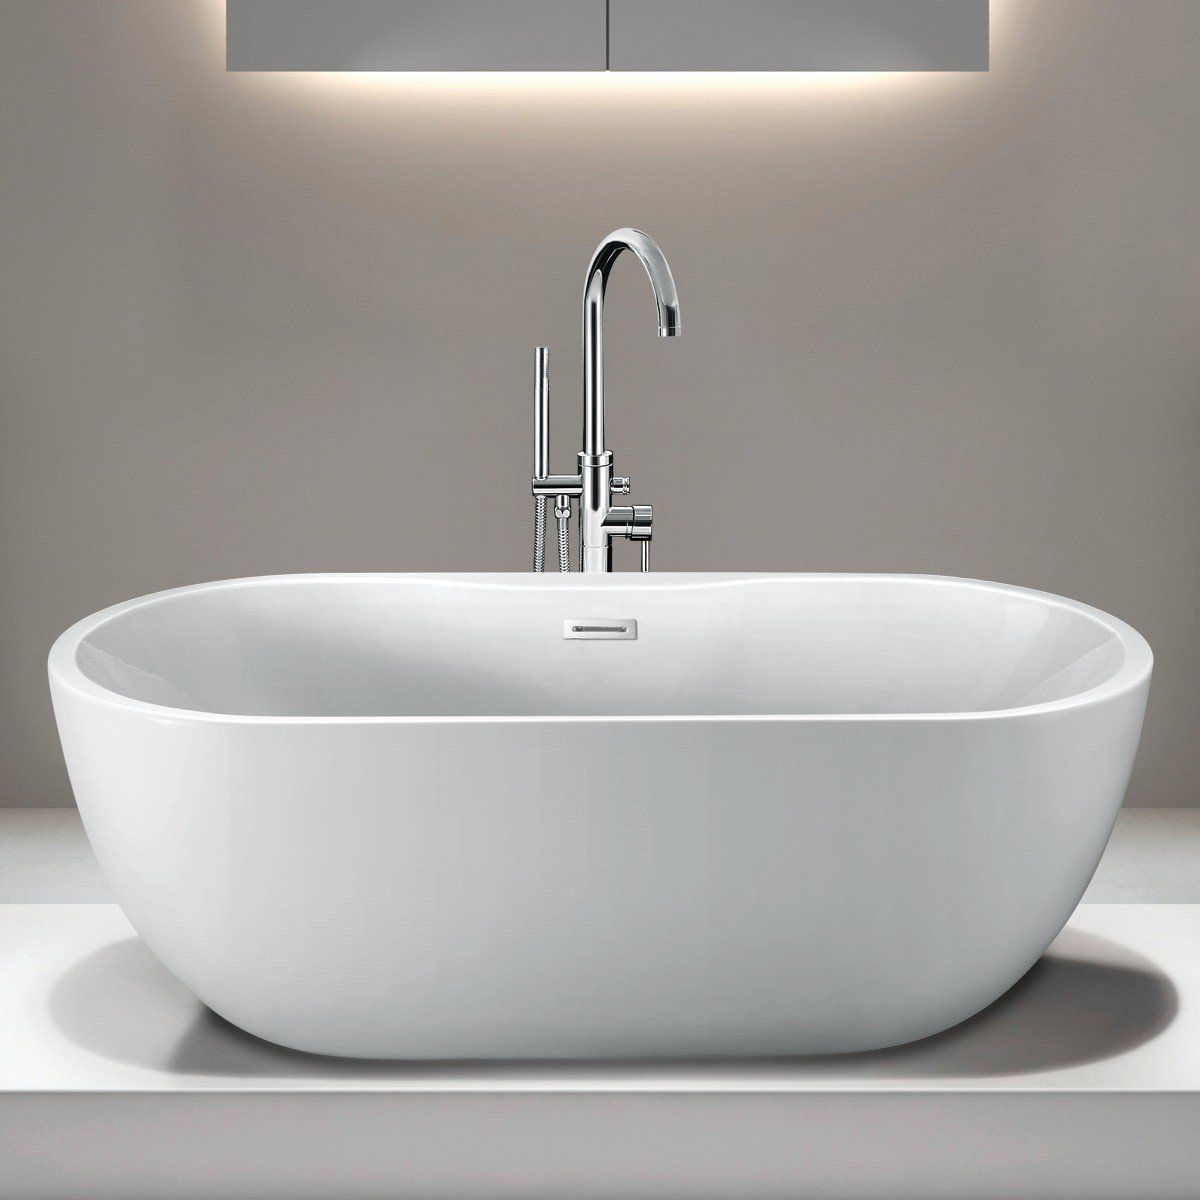 54 inch freestanding tub. Randolph Morris 55 Inch Acrylic Double Ended Freestanding Tub  No Faucet Drillings